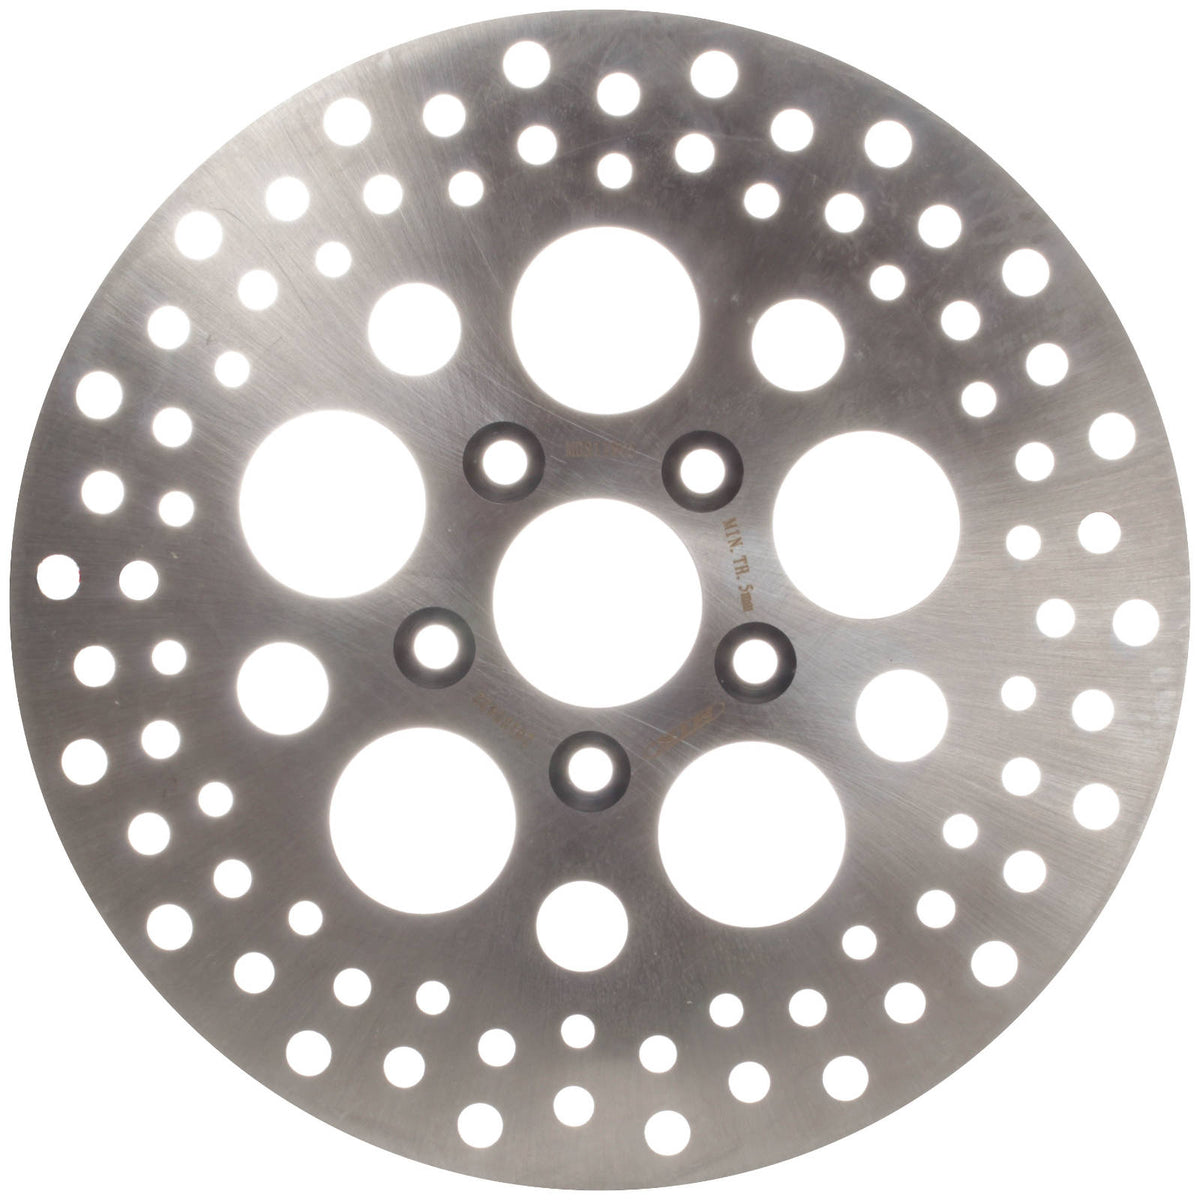 MTX BRAKE ROTOR SOLID TYPE - tapered bolt holes, countersunk